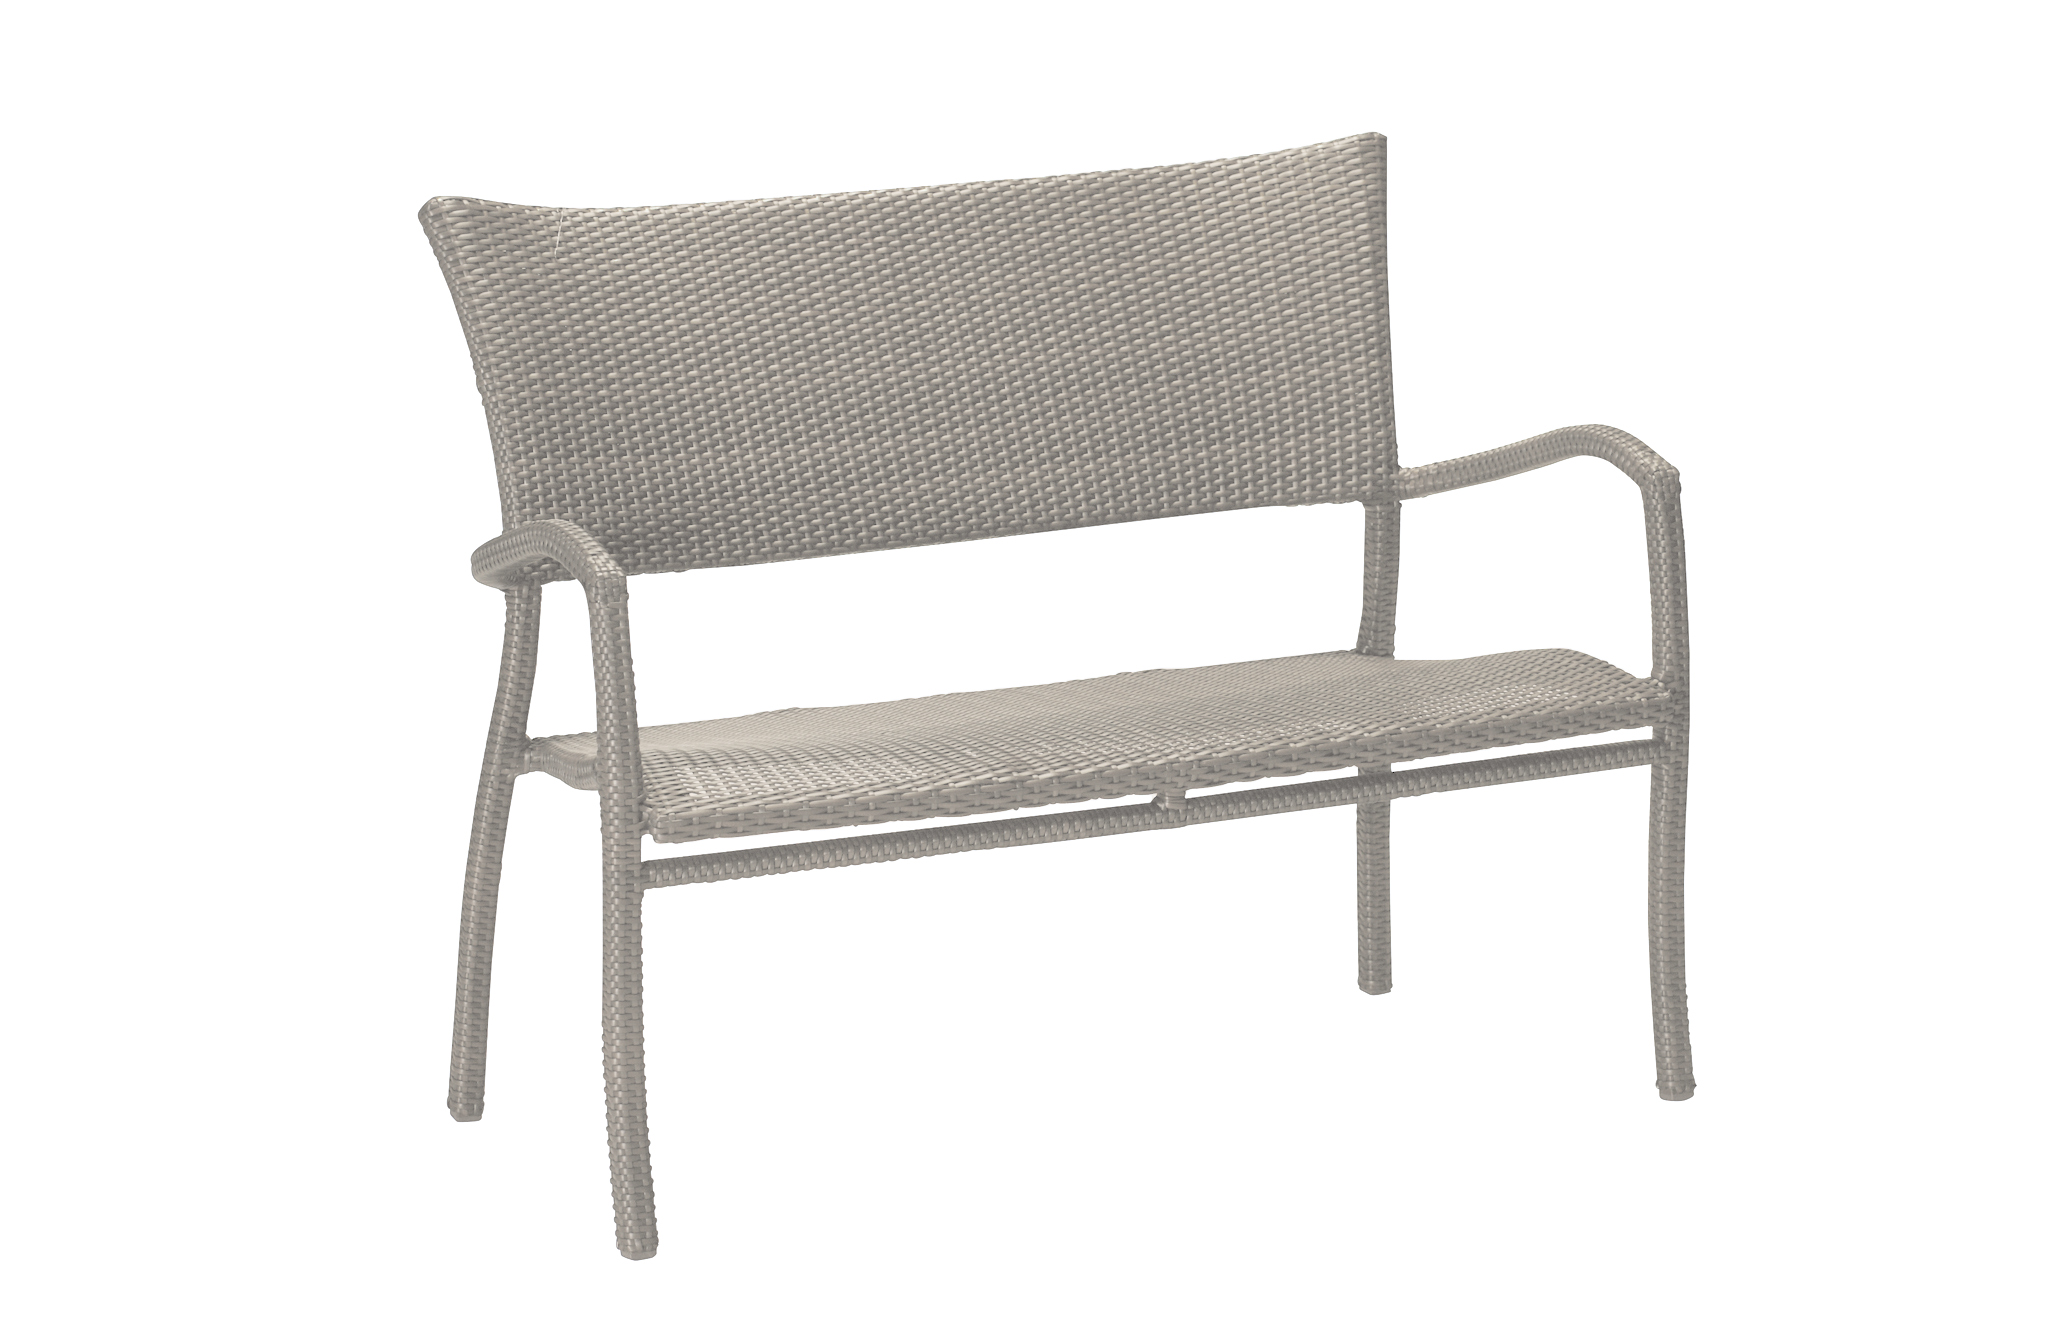 ... Outdoor Patio Bench | Skye Woven Resin Collection | Summer Classics  Garden Bench ...